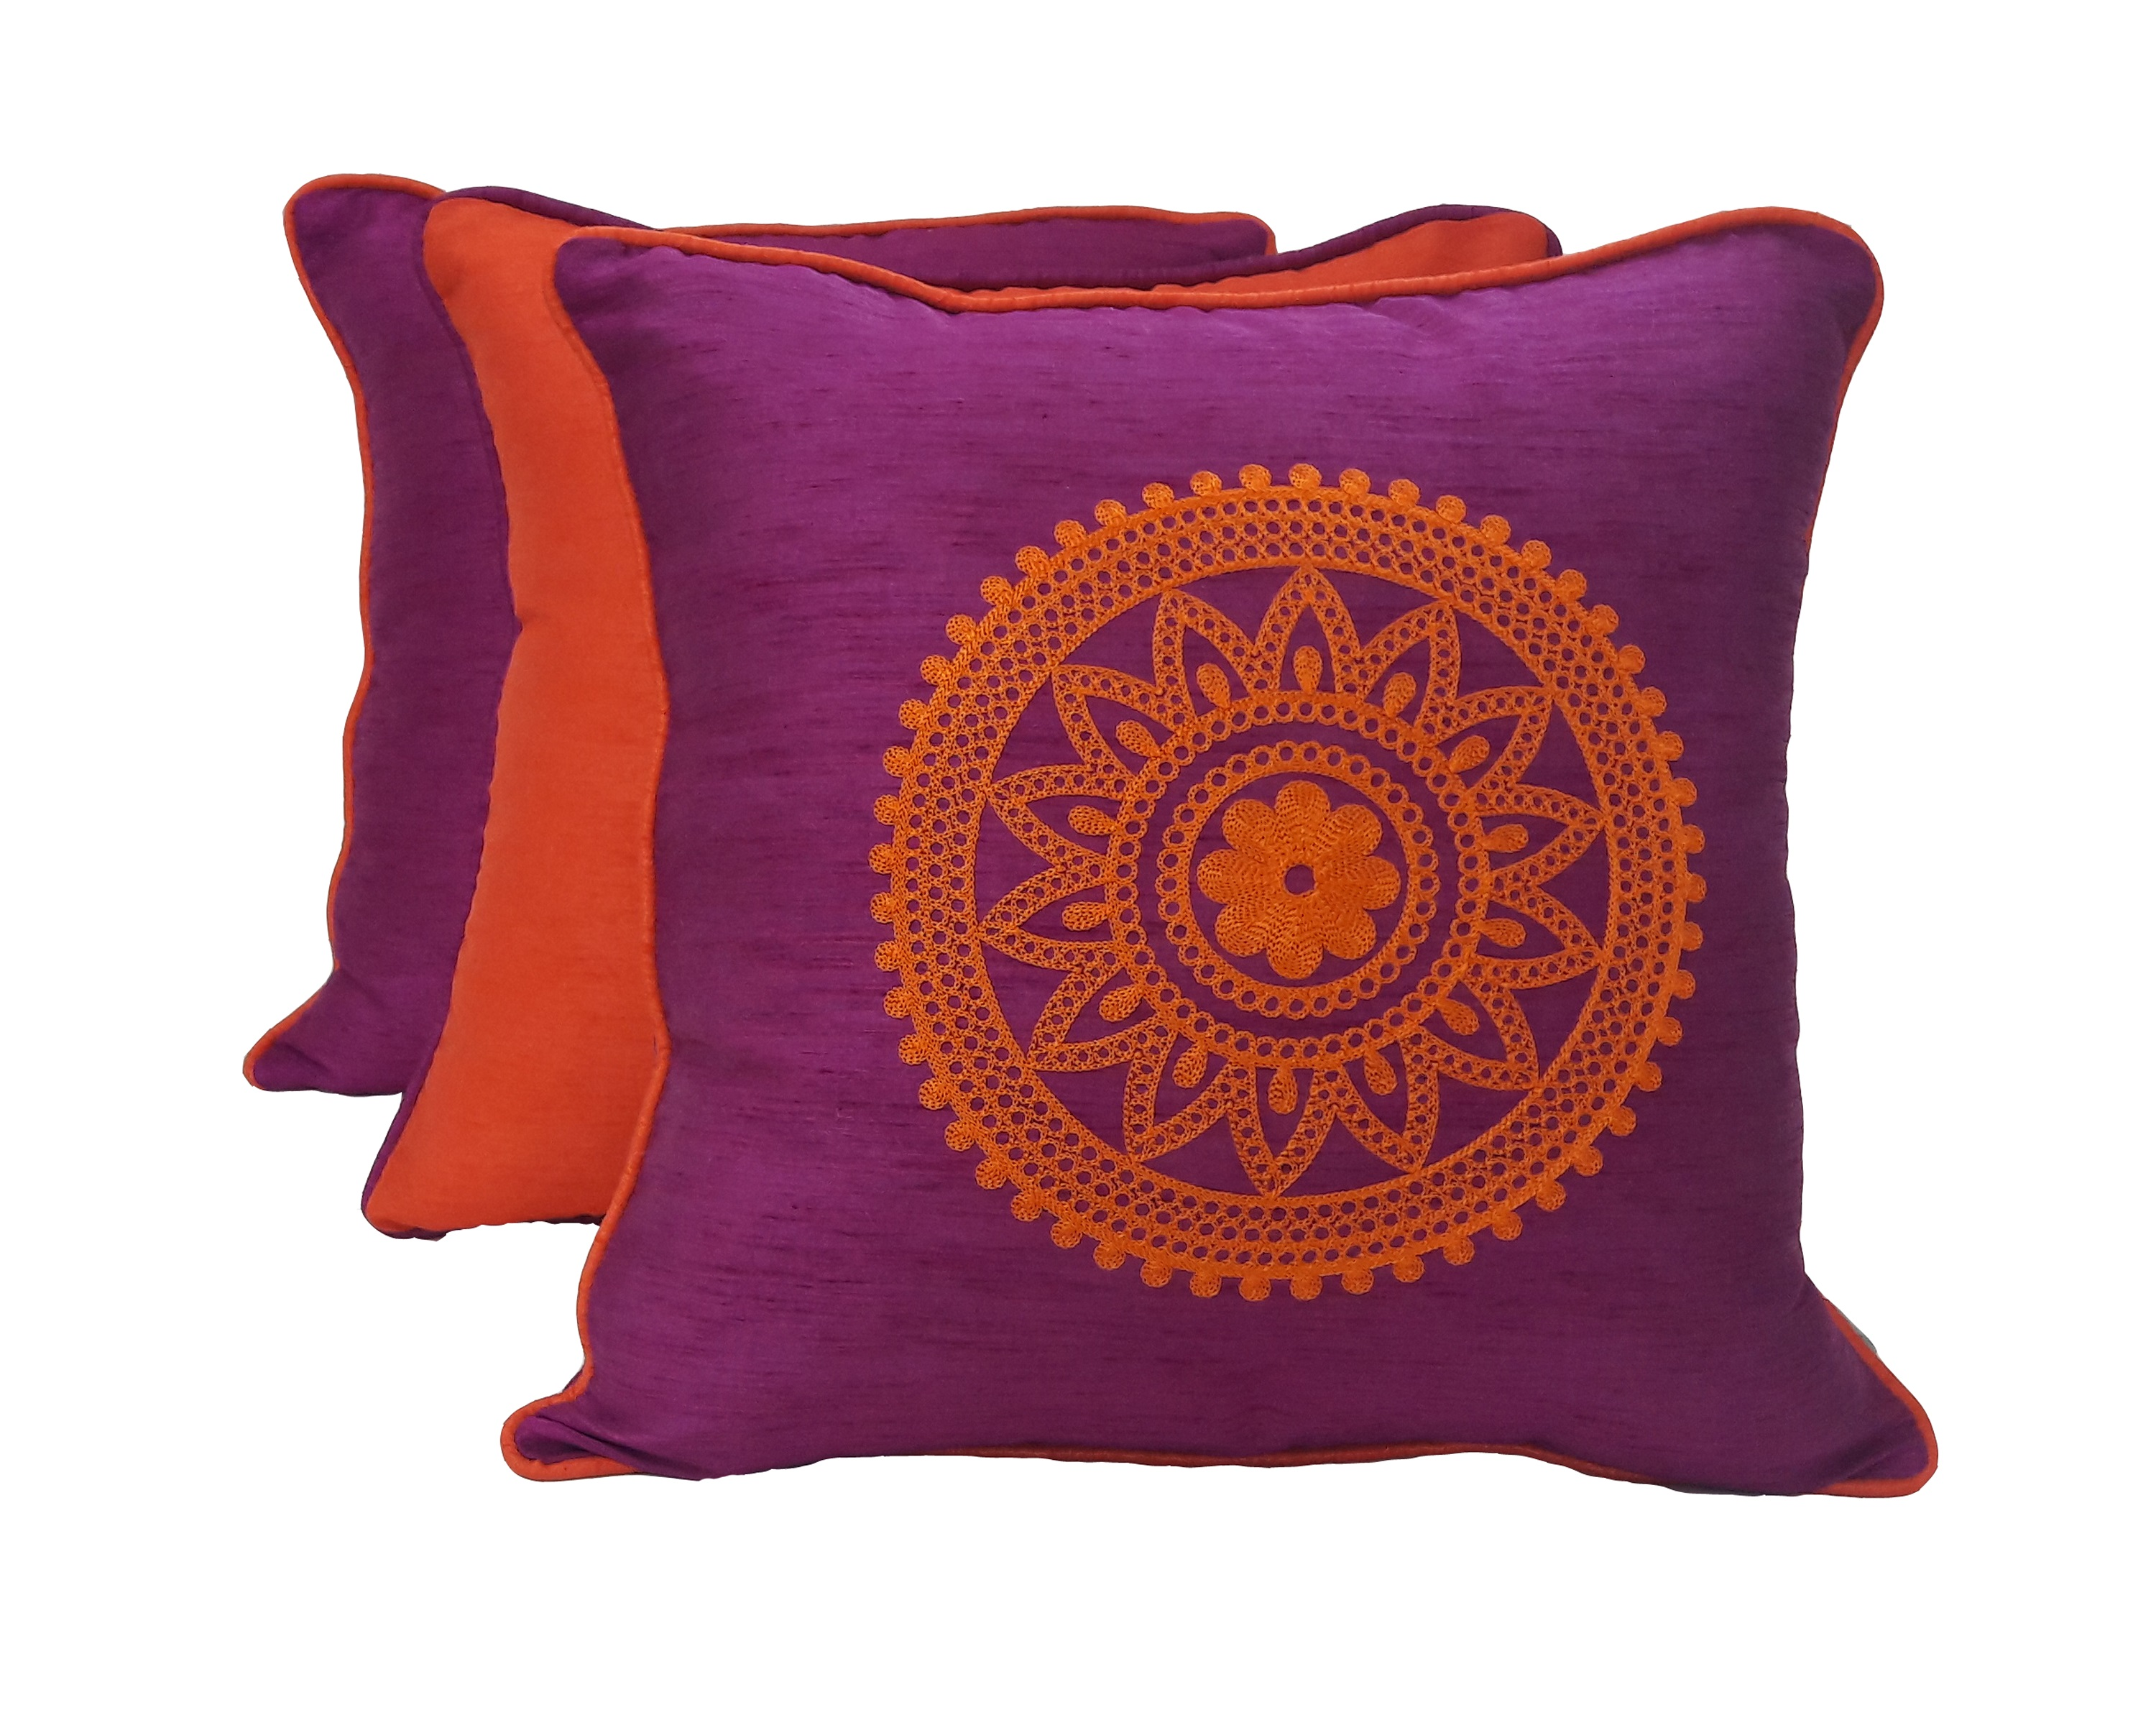 Set Of 3 Cc 16X16 Fiesta Magen Orange Polyester Cushion Cover Sets in Magenta Orange Colour by Living Essence